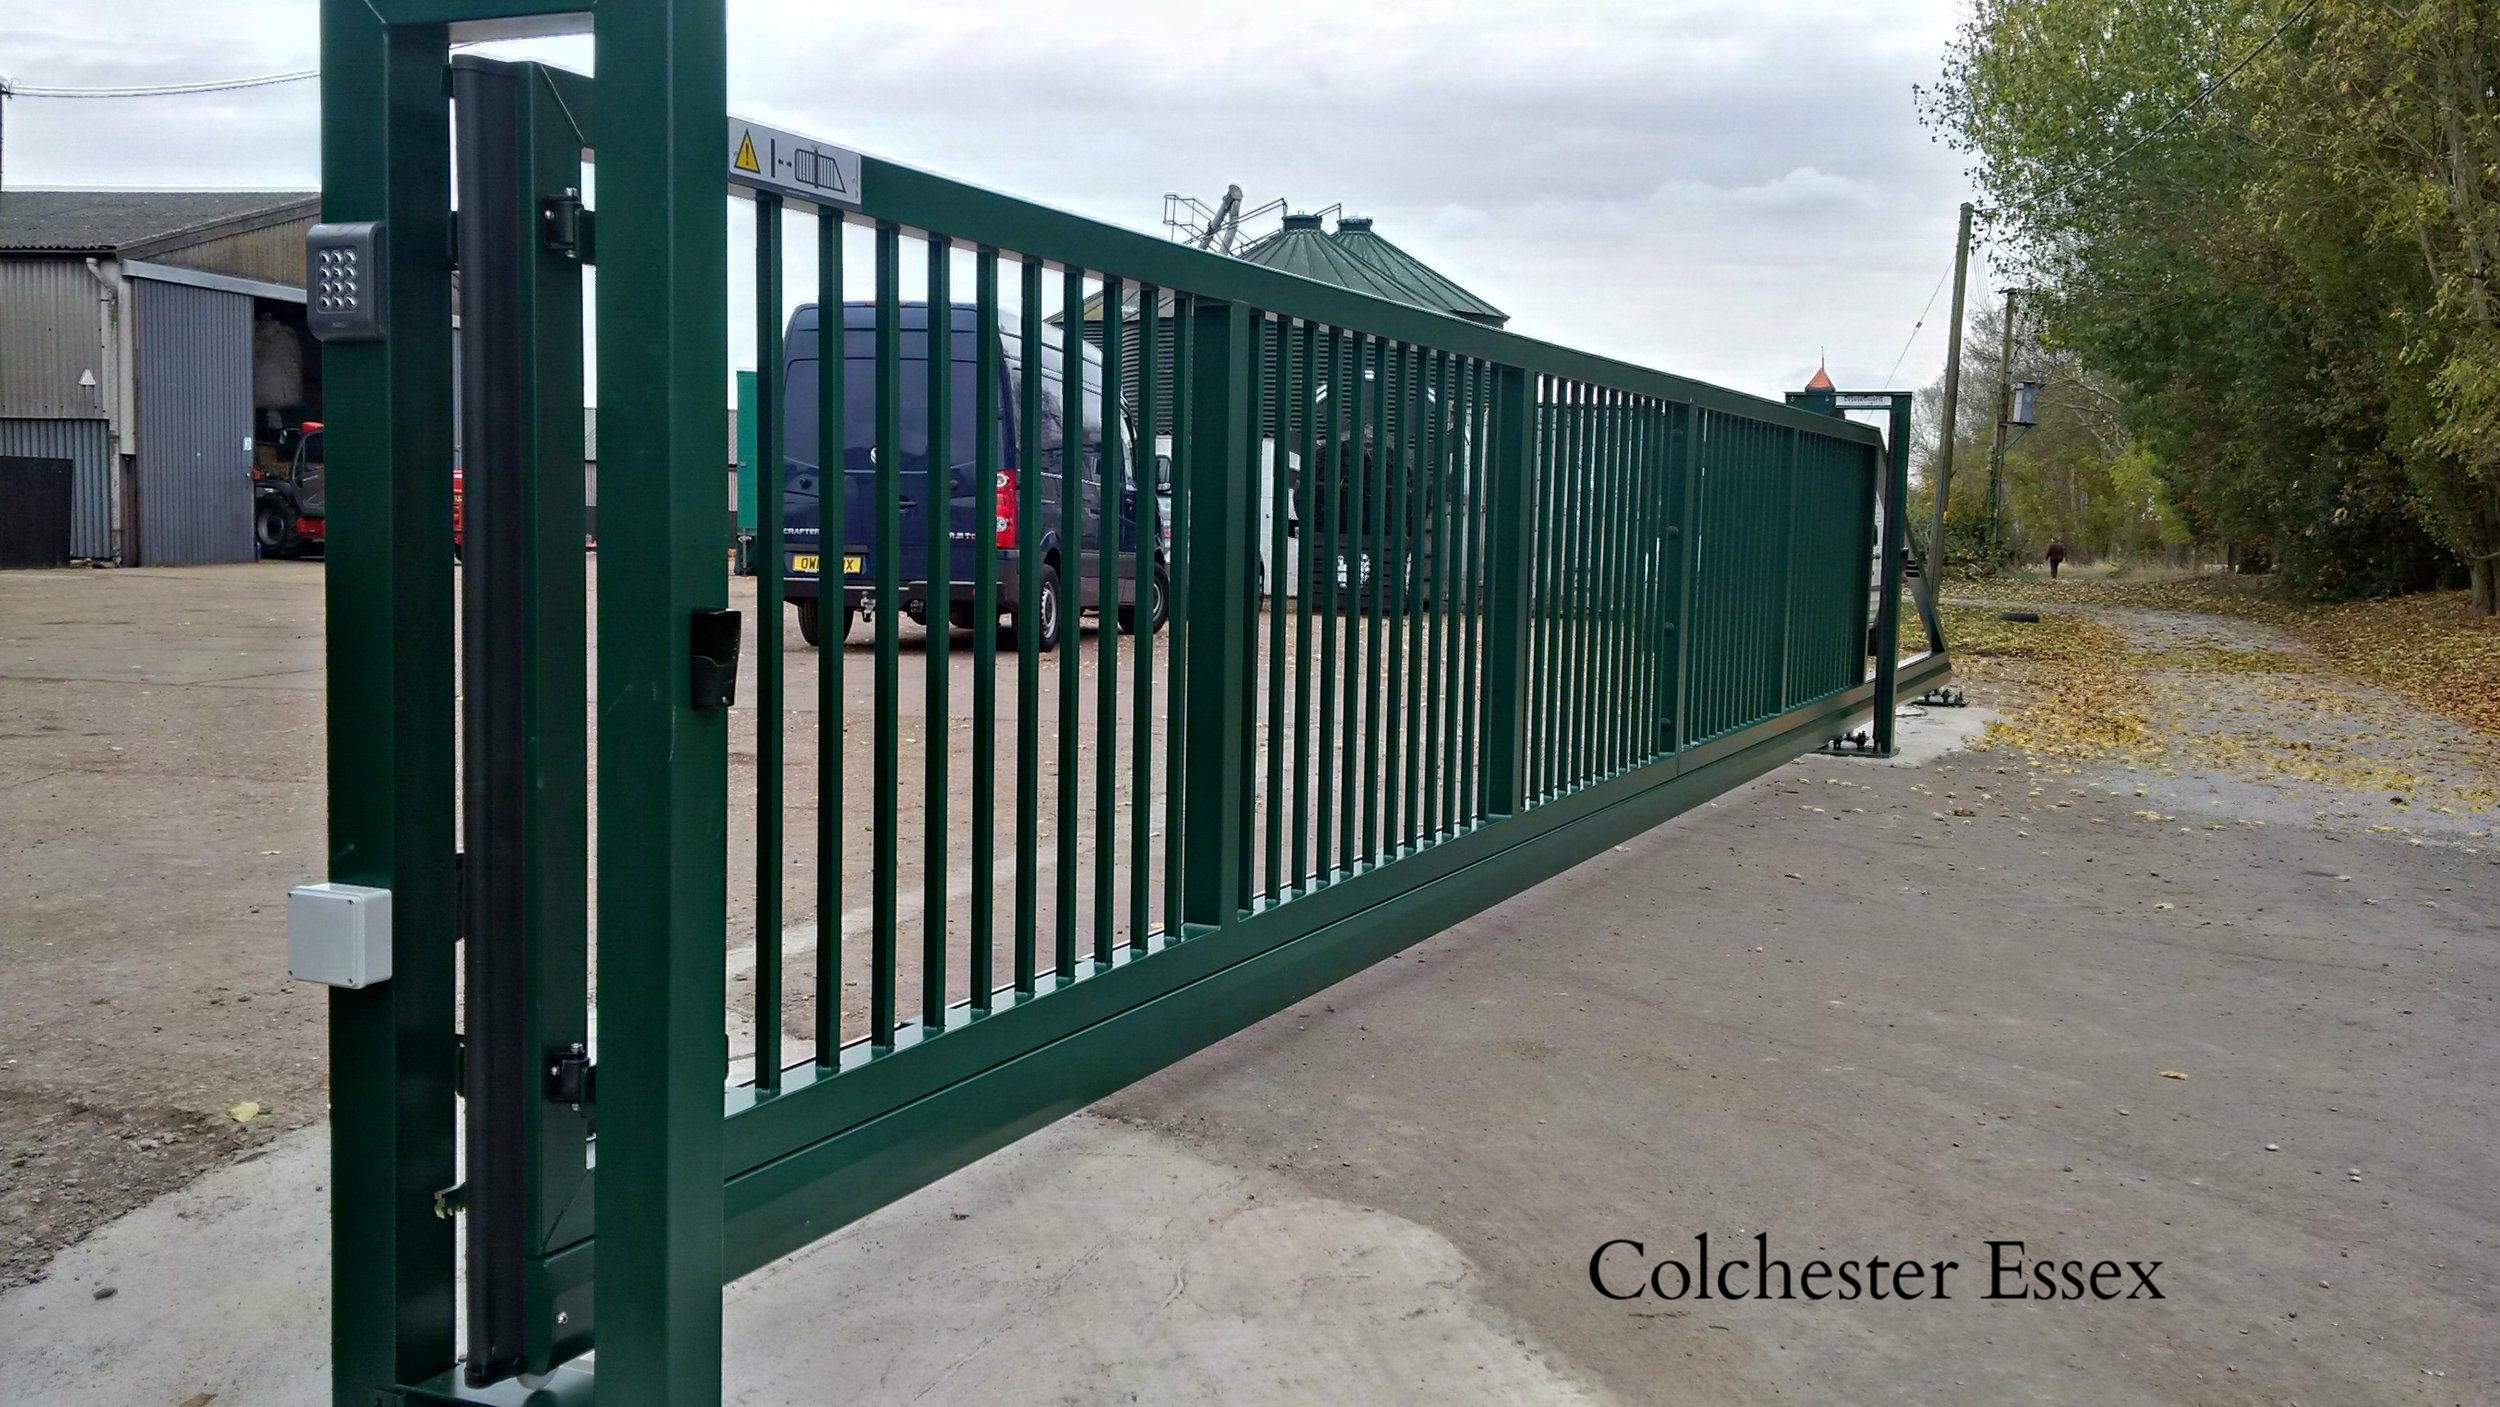 Copy of Colchester Essex